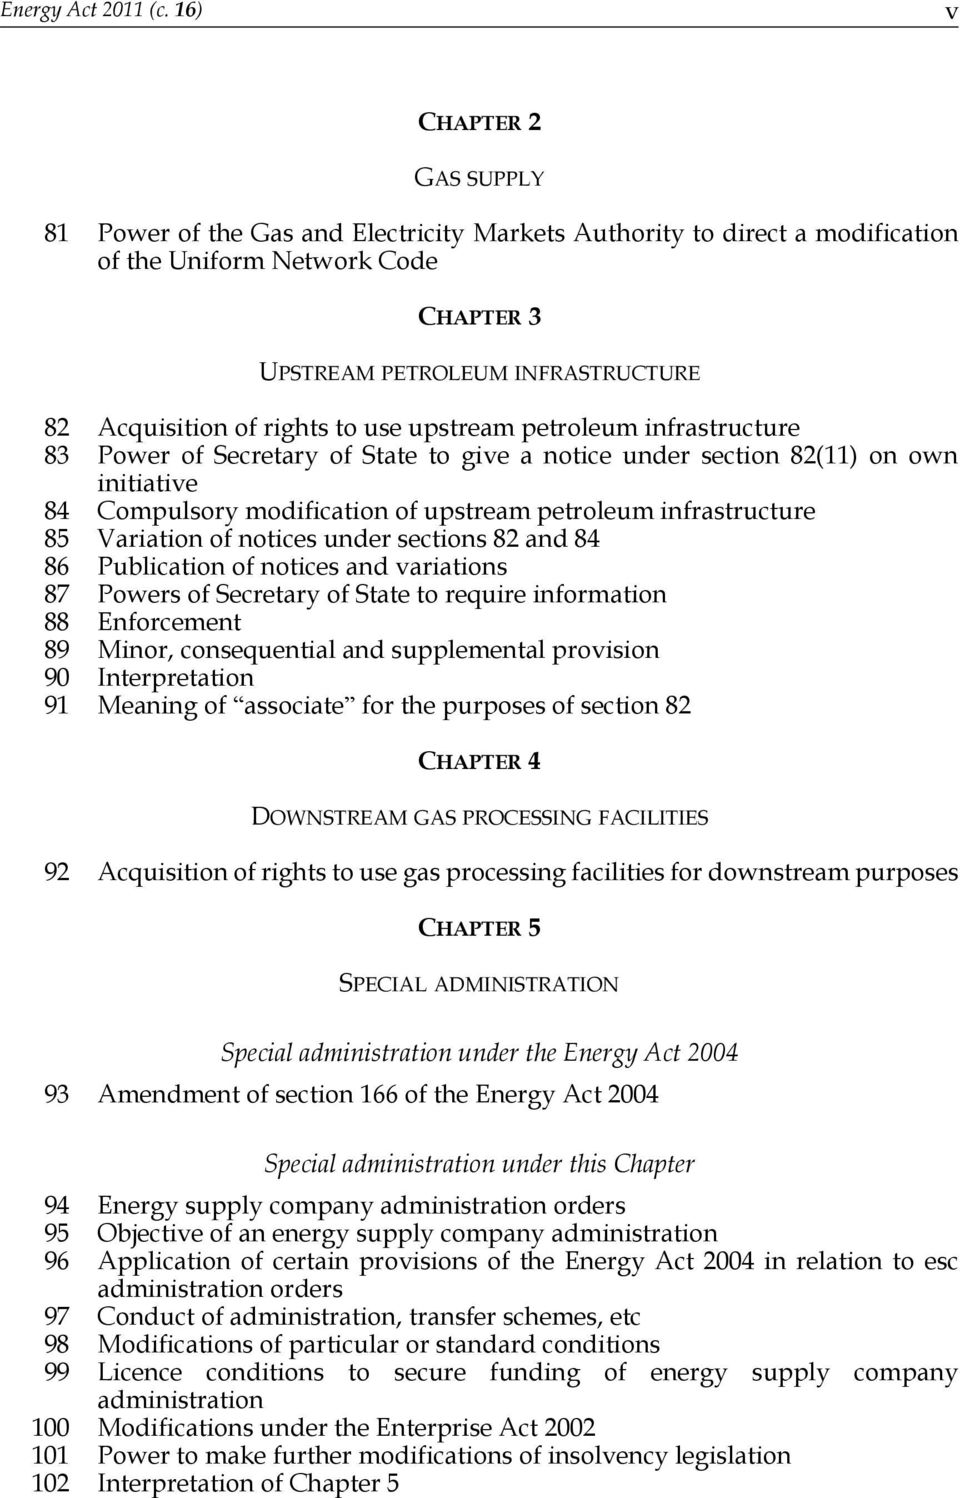 rights to use upstream petroleum infrastructure 83 Power of Secretary of State to give a notice under section 82(11) on own initiative 84 Compulsory modification of upstream petroleum infrastructure